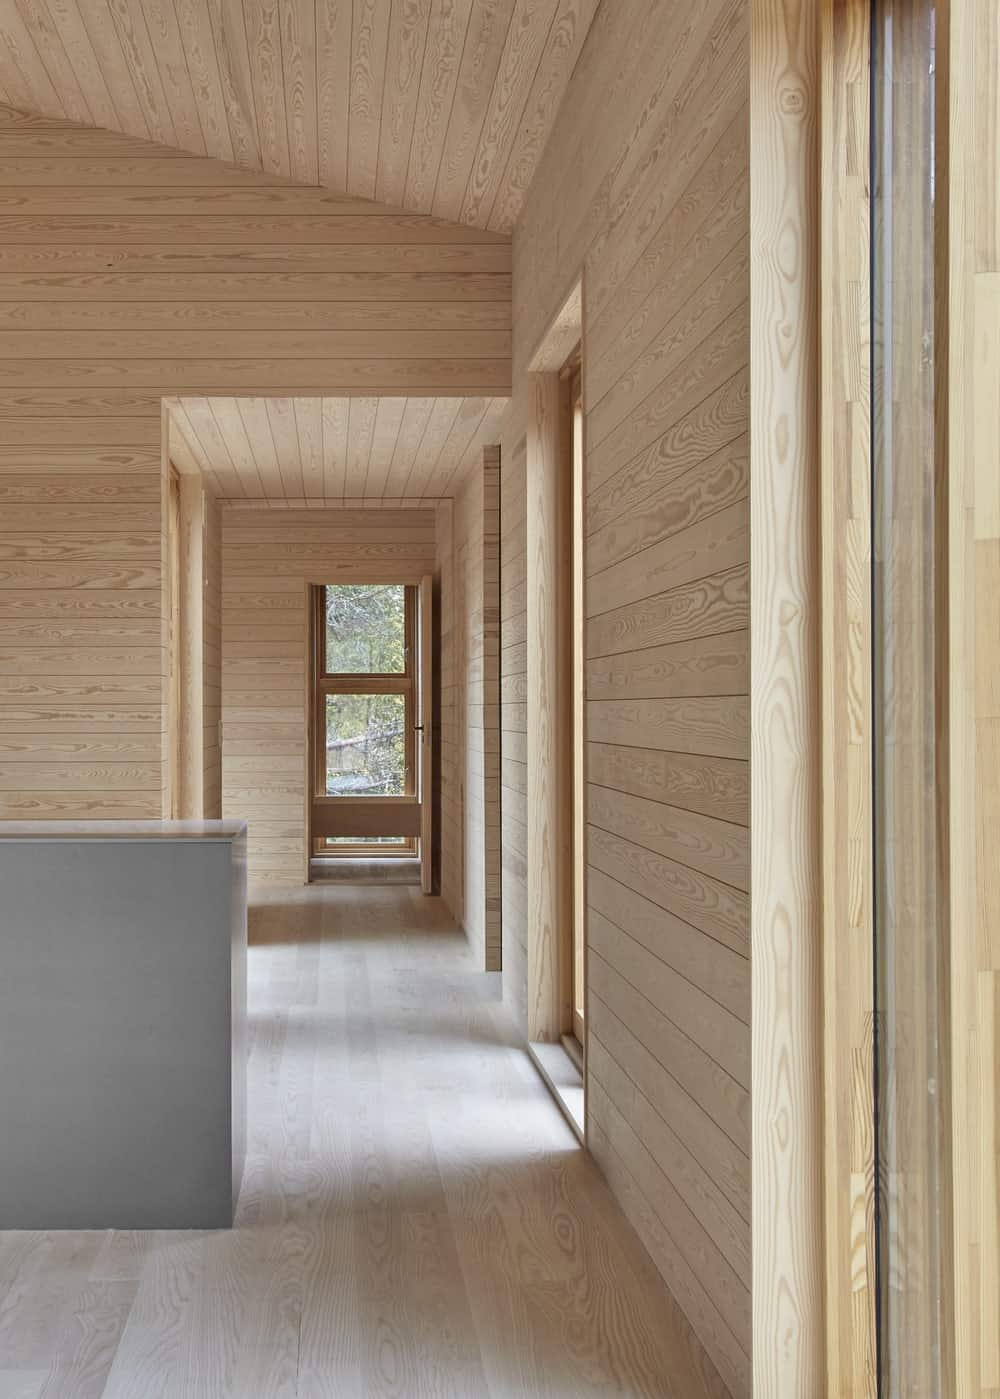 This is a look at the hallway of the house that has consistent light wooden shiplap walls and tall arched ceiling.